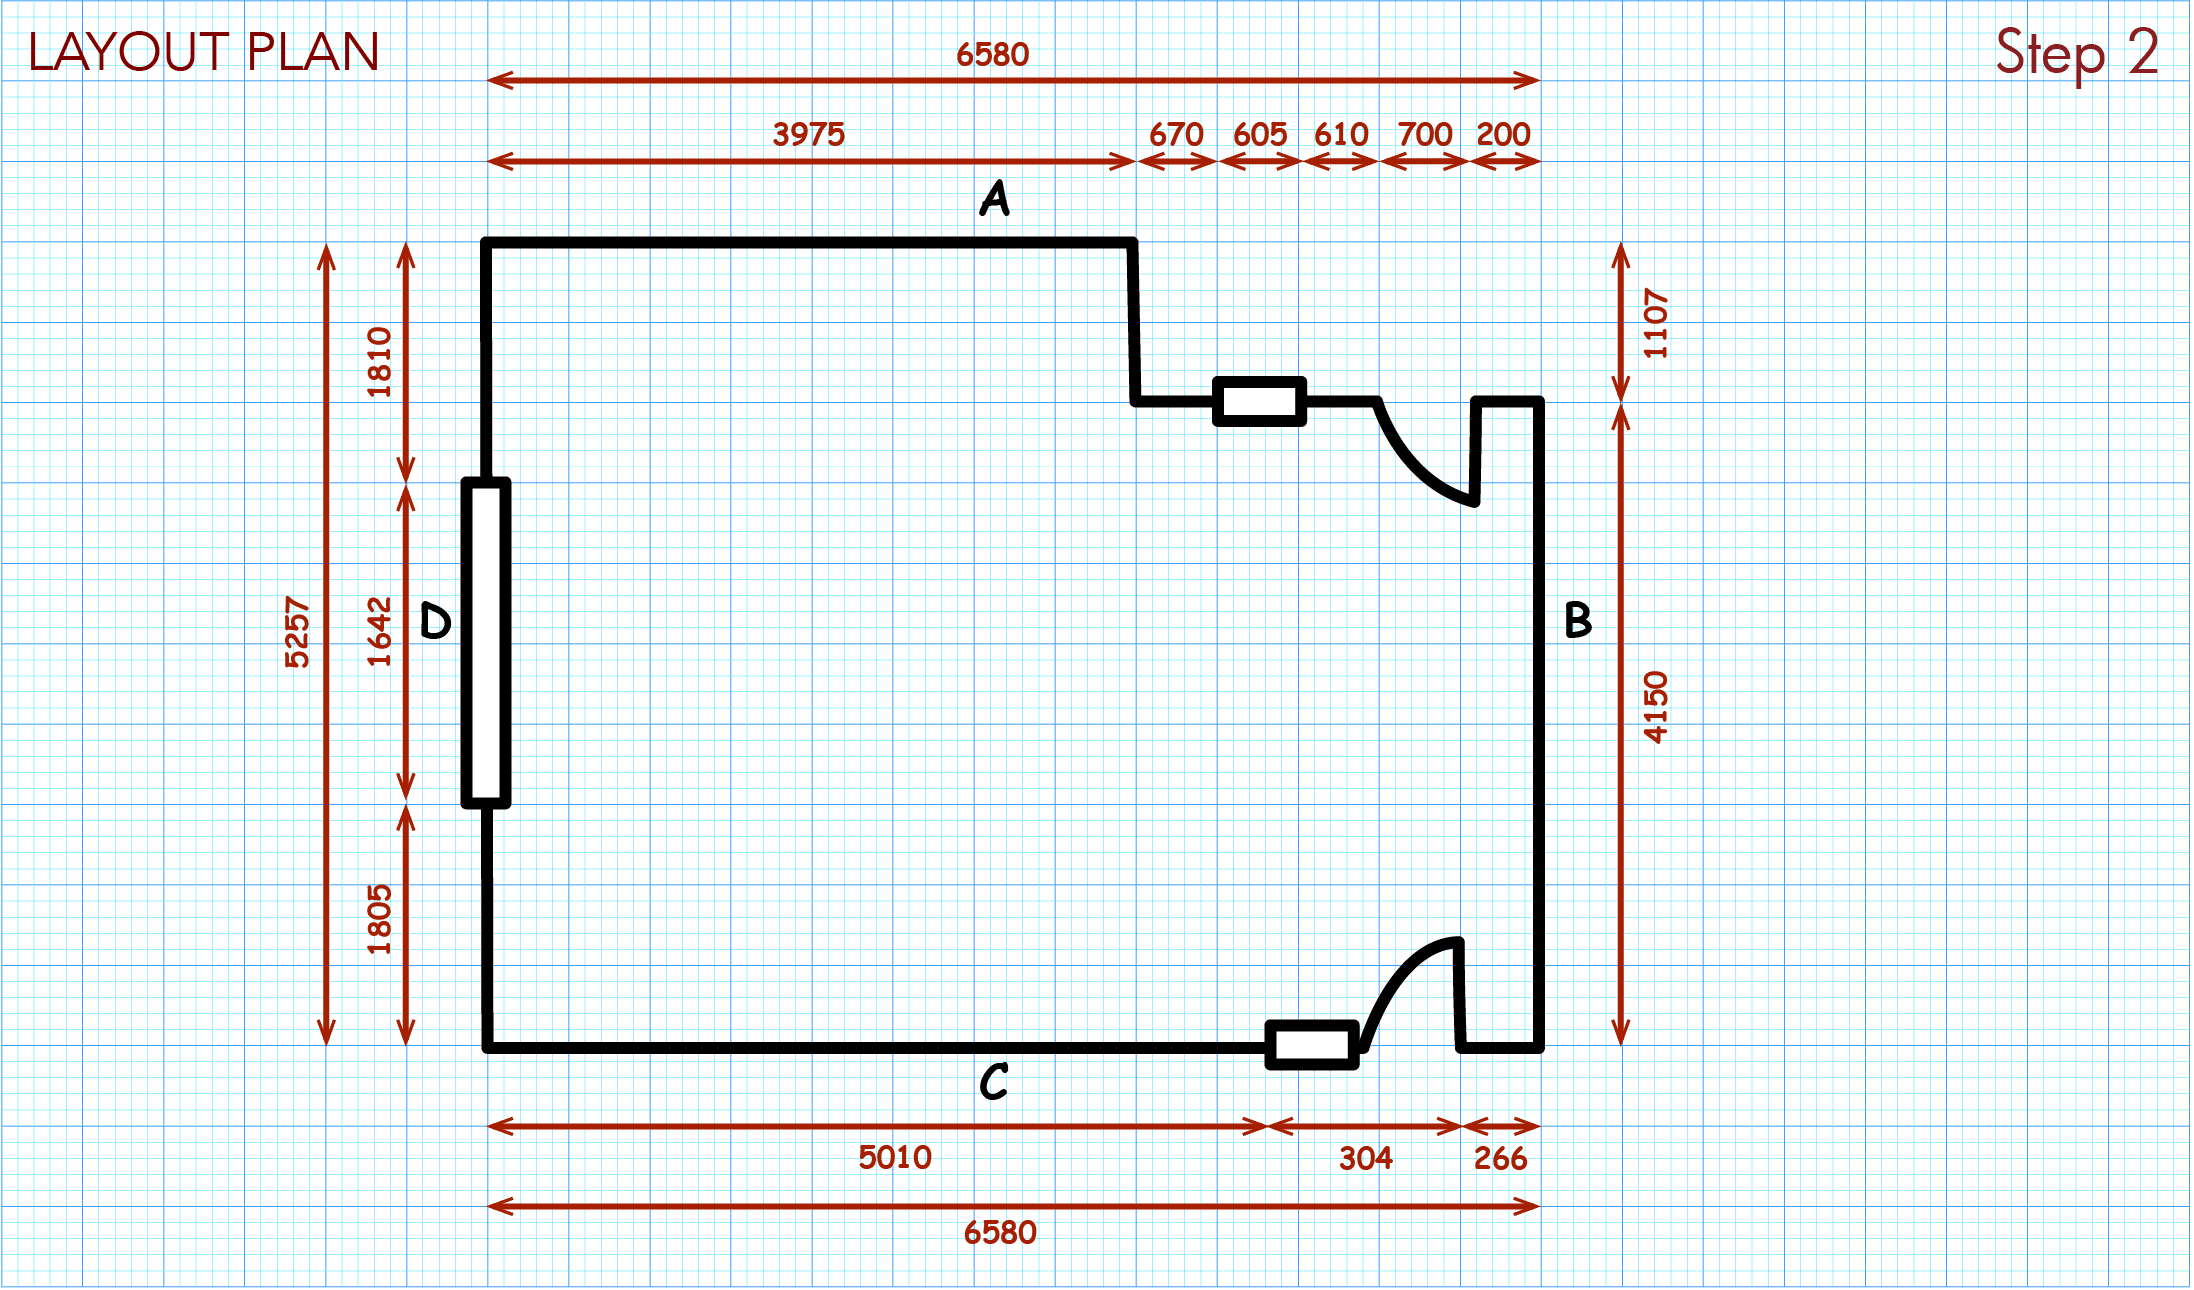 Add more detailed room measurements